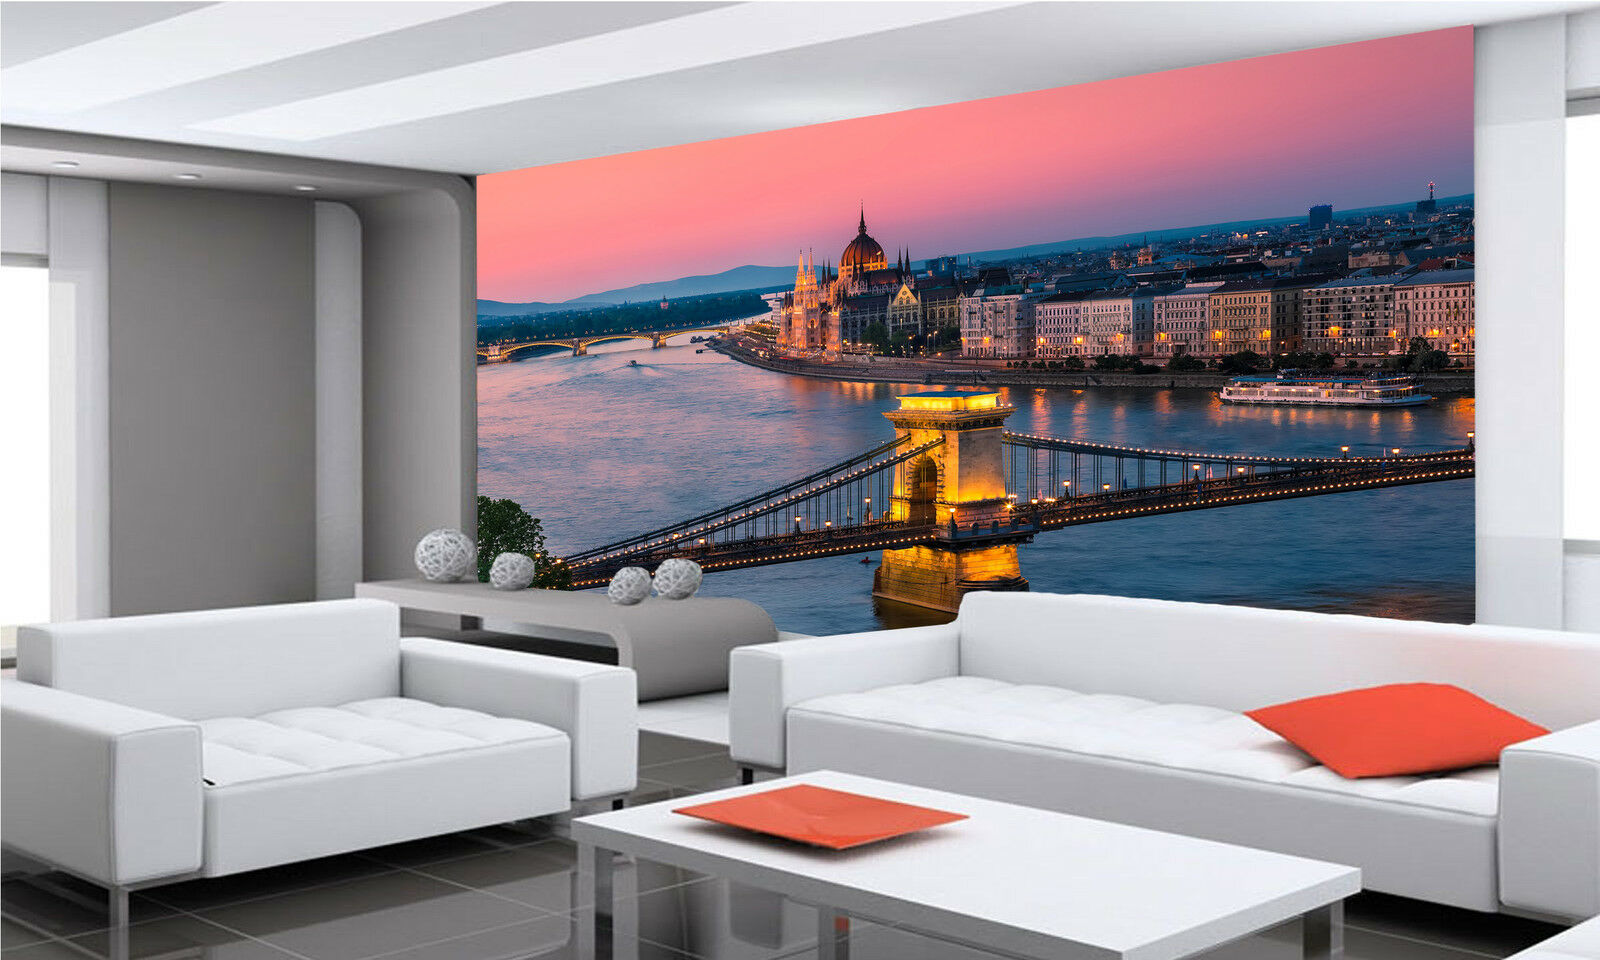 Budapest, Hungary Wall Mural Photo Wallpaper GIANT DECOR Paper Poster Free Paste